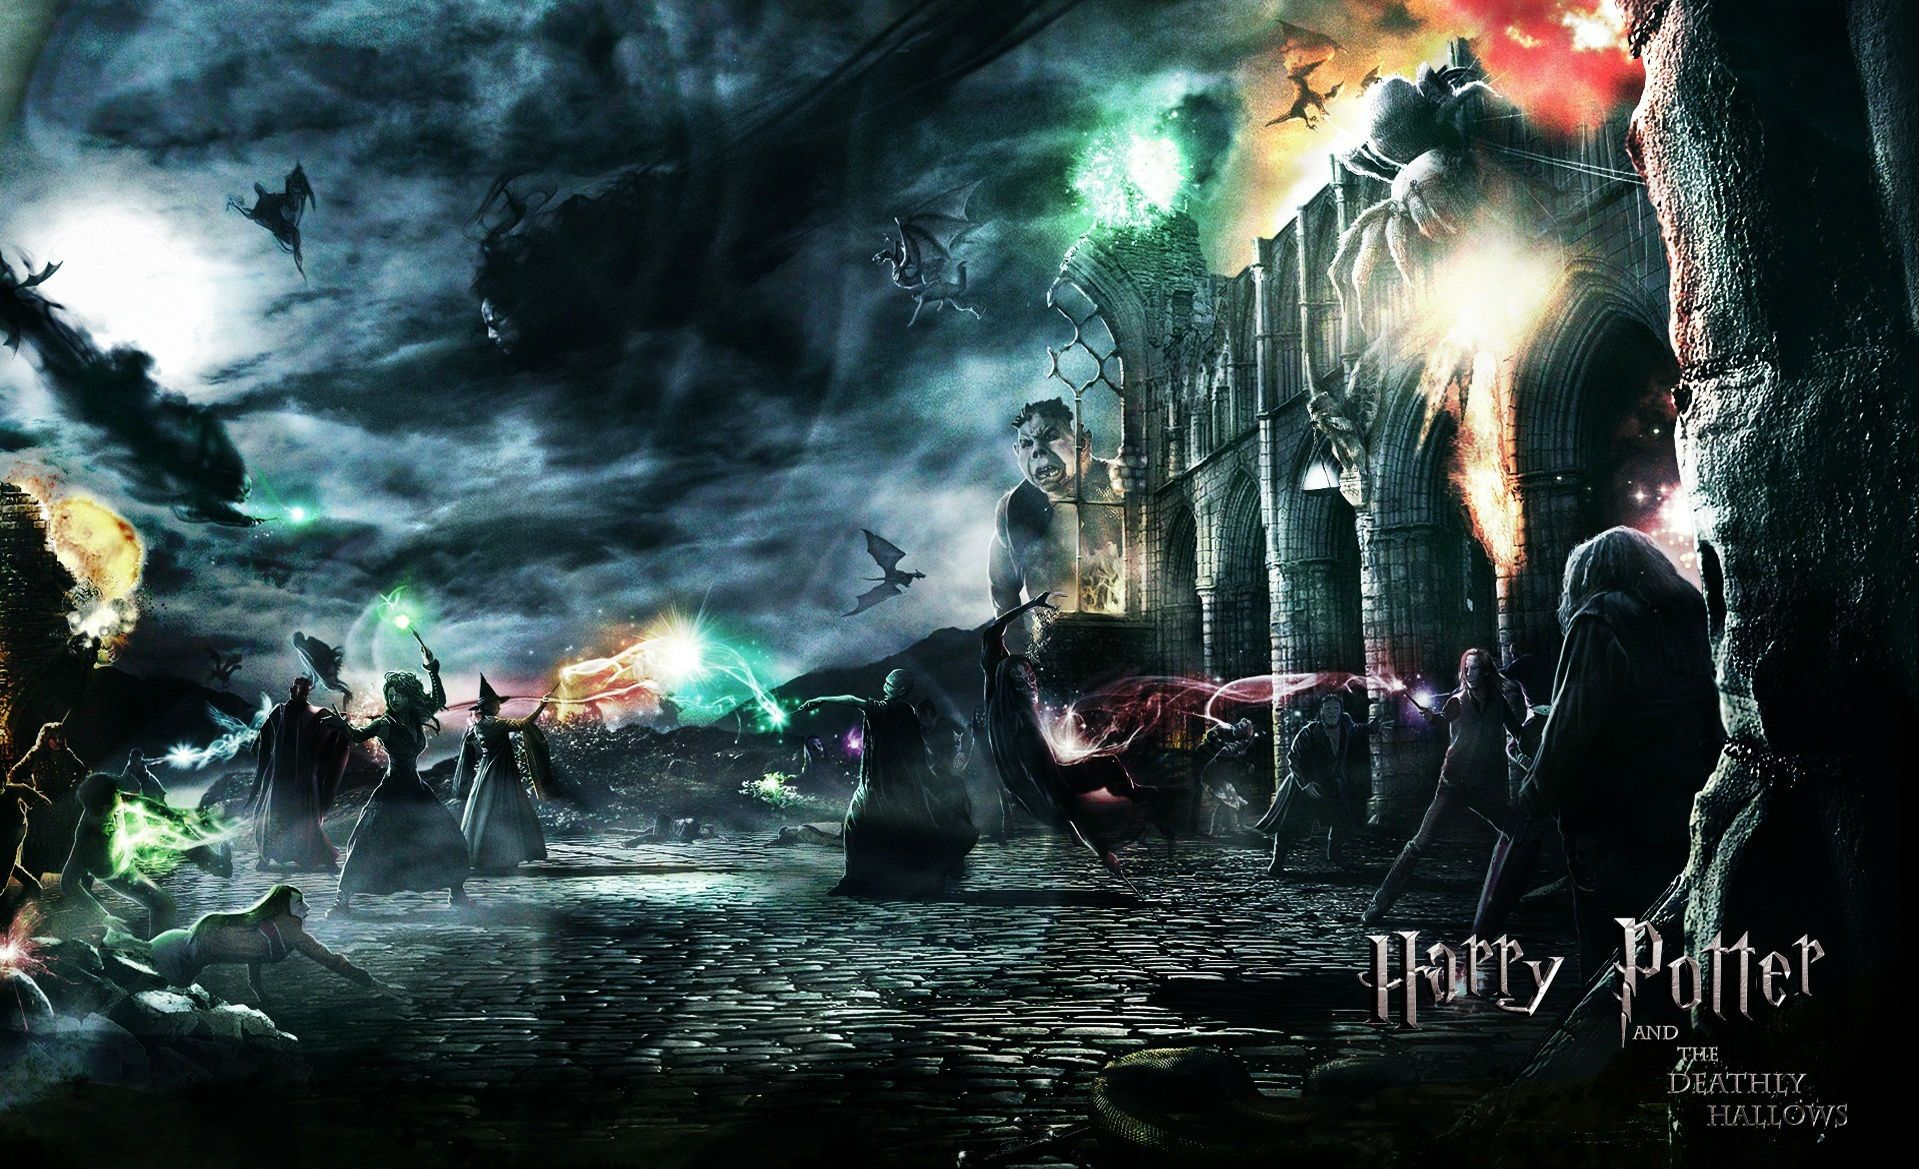 Ultra Hd Harry Potter Desktop Wallpaper 1919x1169